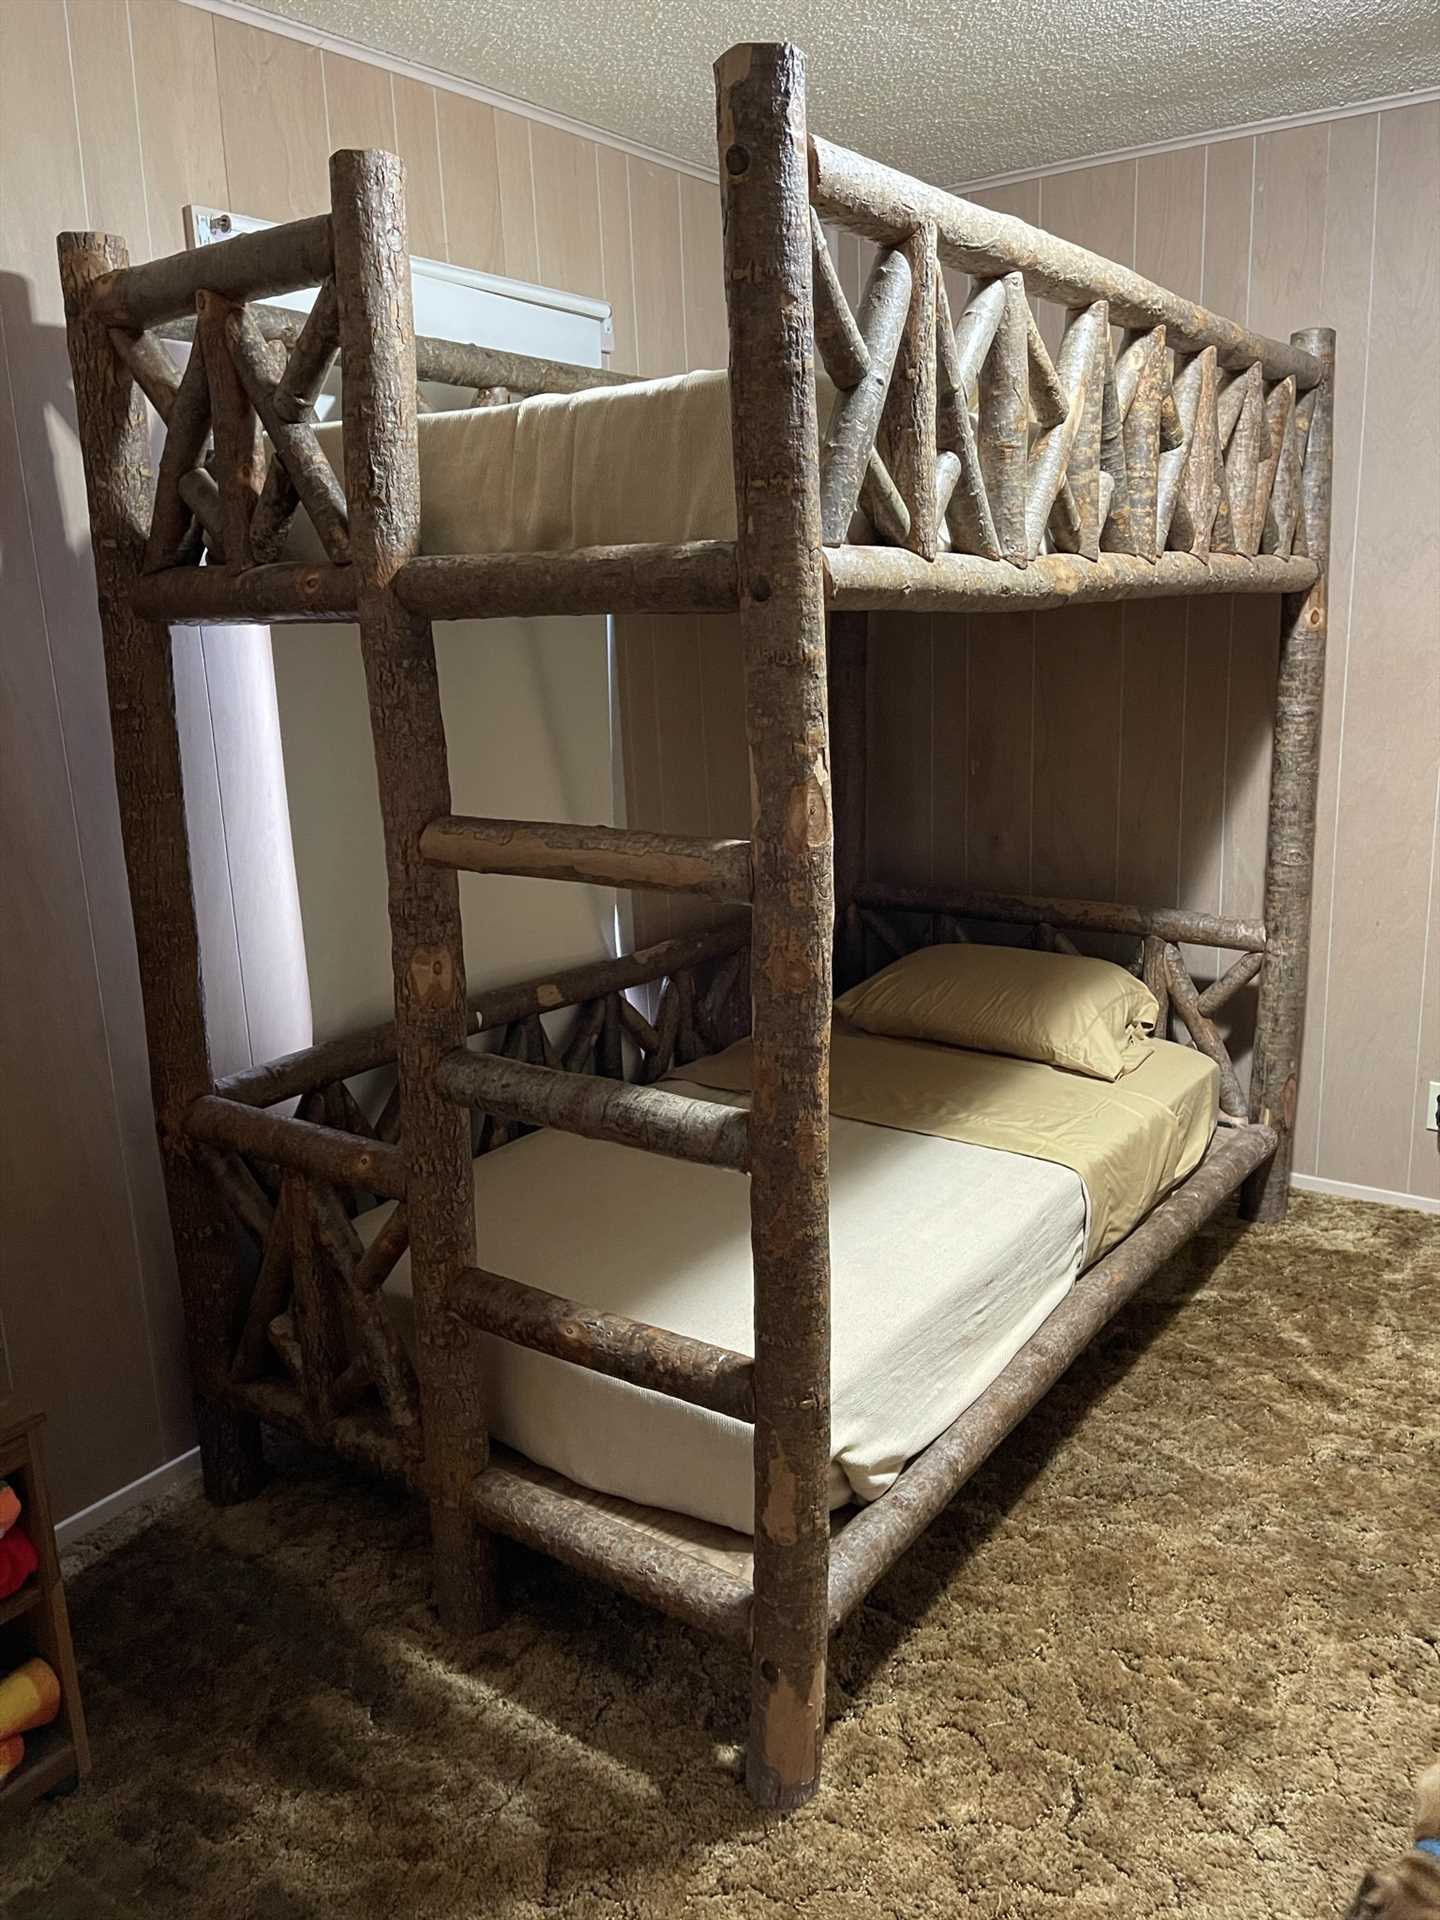 Bunk up, partner! Who gets the top bunk?